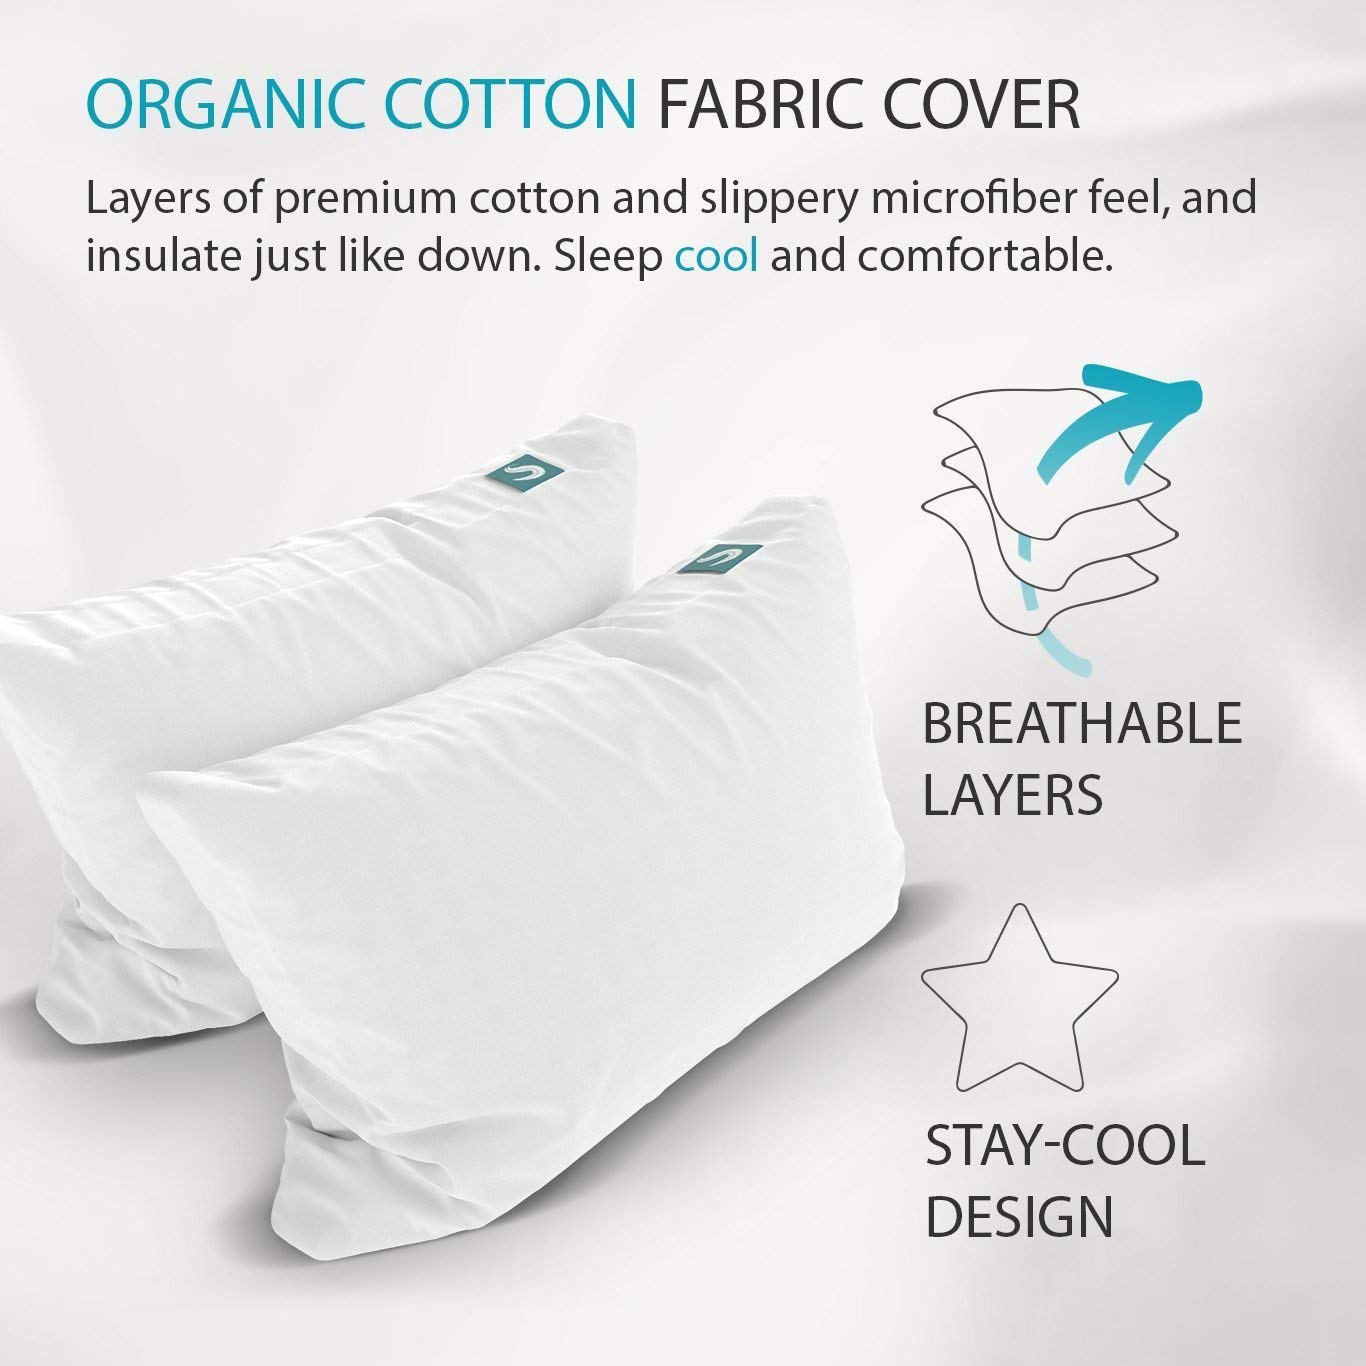 Organic Cotton Fabric Cover - Layers of Premium Cotton With Breathable Layers That Stays Cool